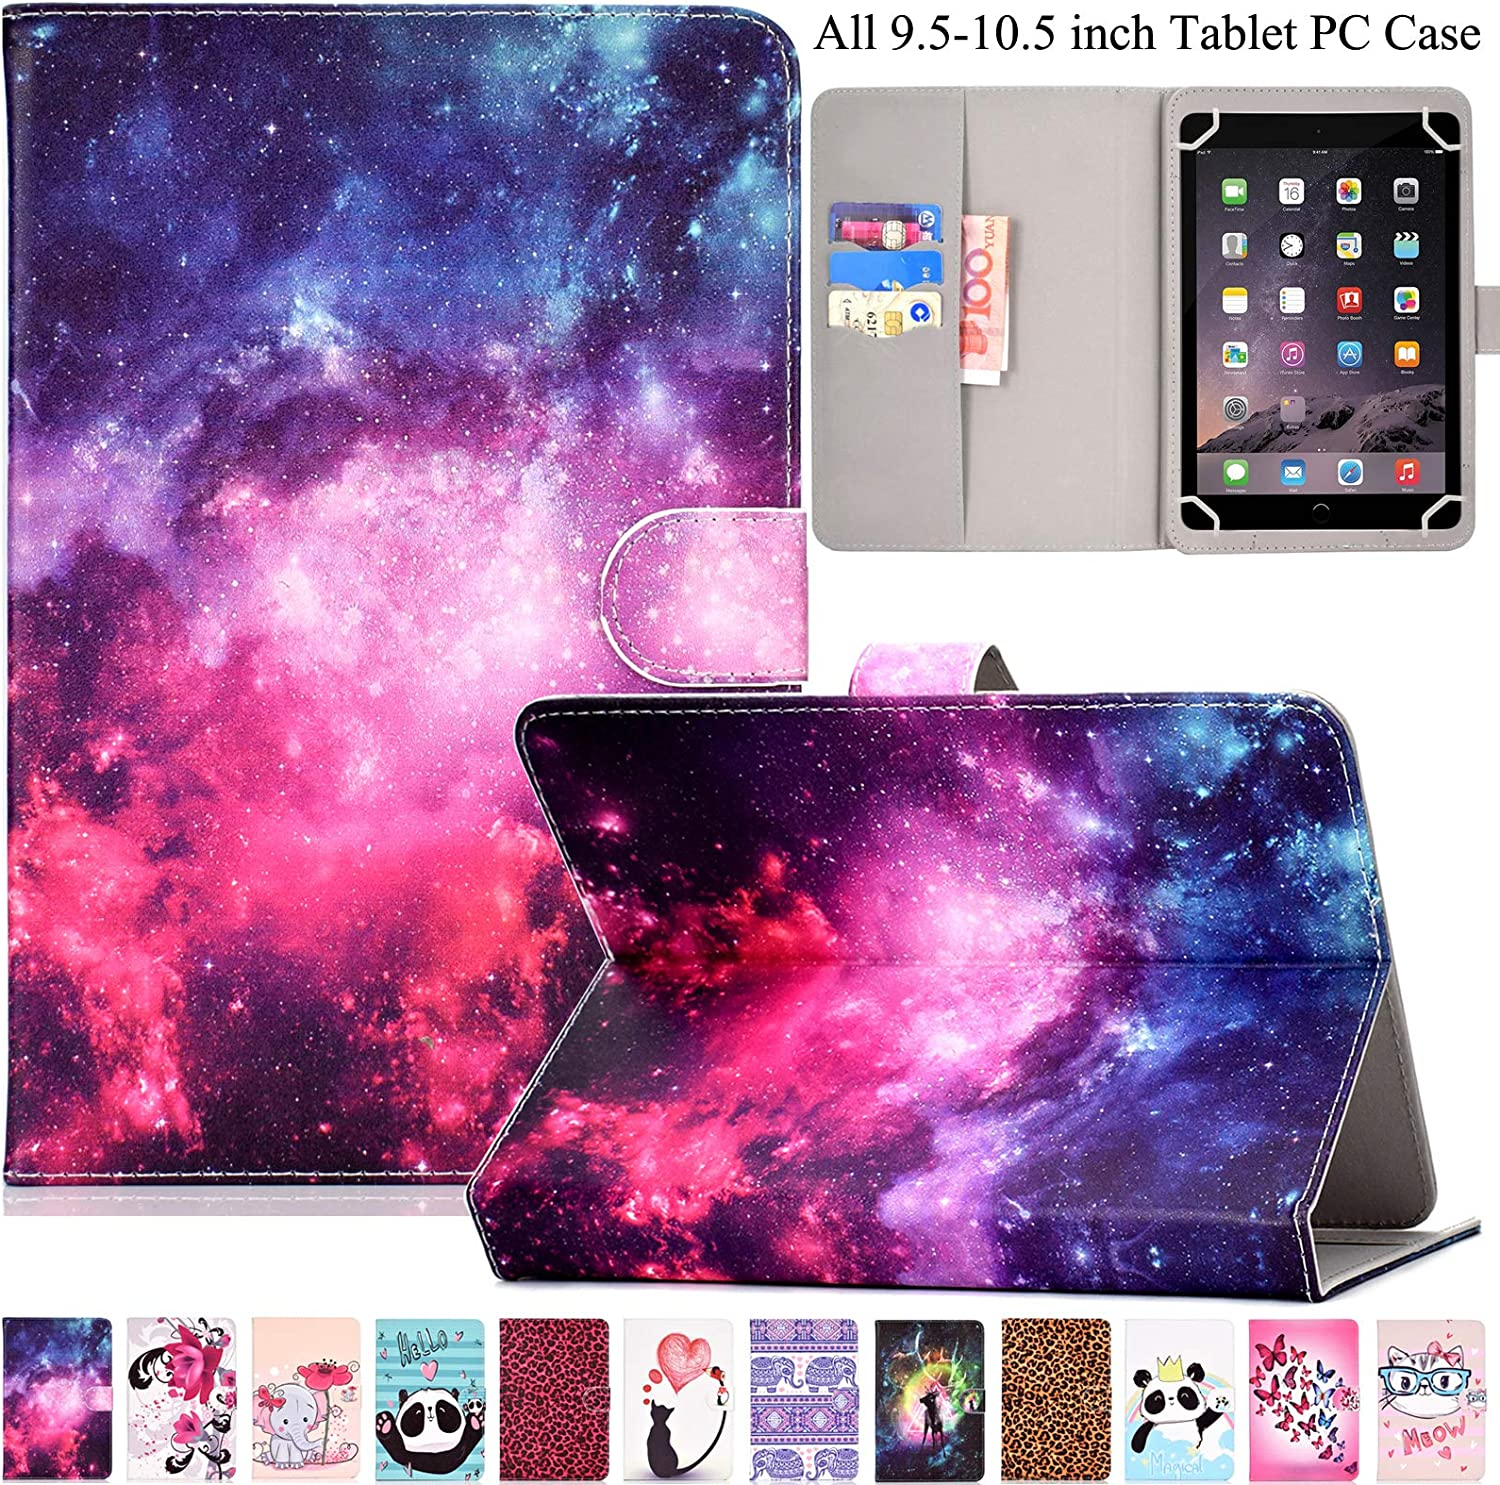 "Universal Case for 9.5""-10.5"" Tablet, Artyond PU Leather Cover Slim Fit Folio Cards Slots Case for All Fire HD 10, iPad 9.7 and More 9.6"" 9.7"" 10.1"" 10.5"" Android iOS Tablet (Starry Sky)"